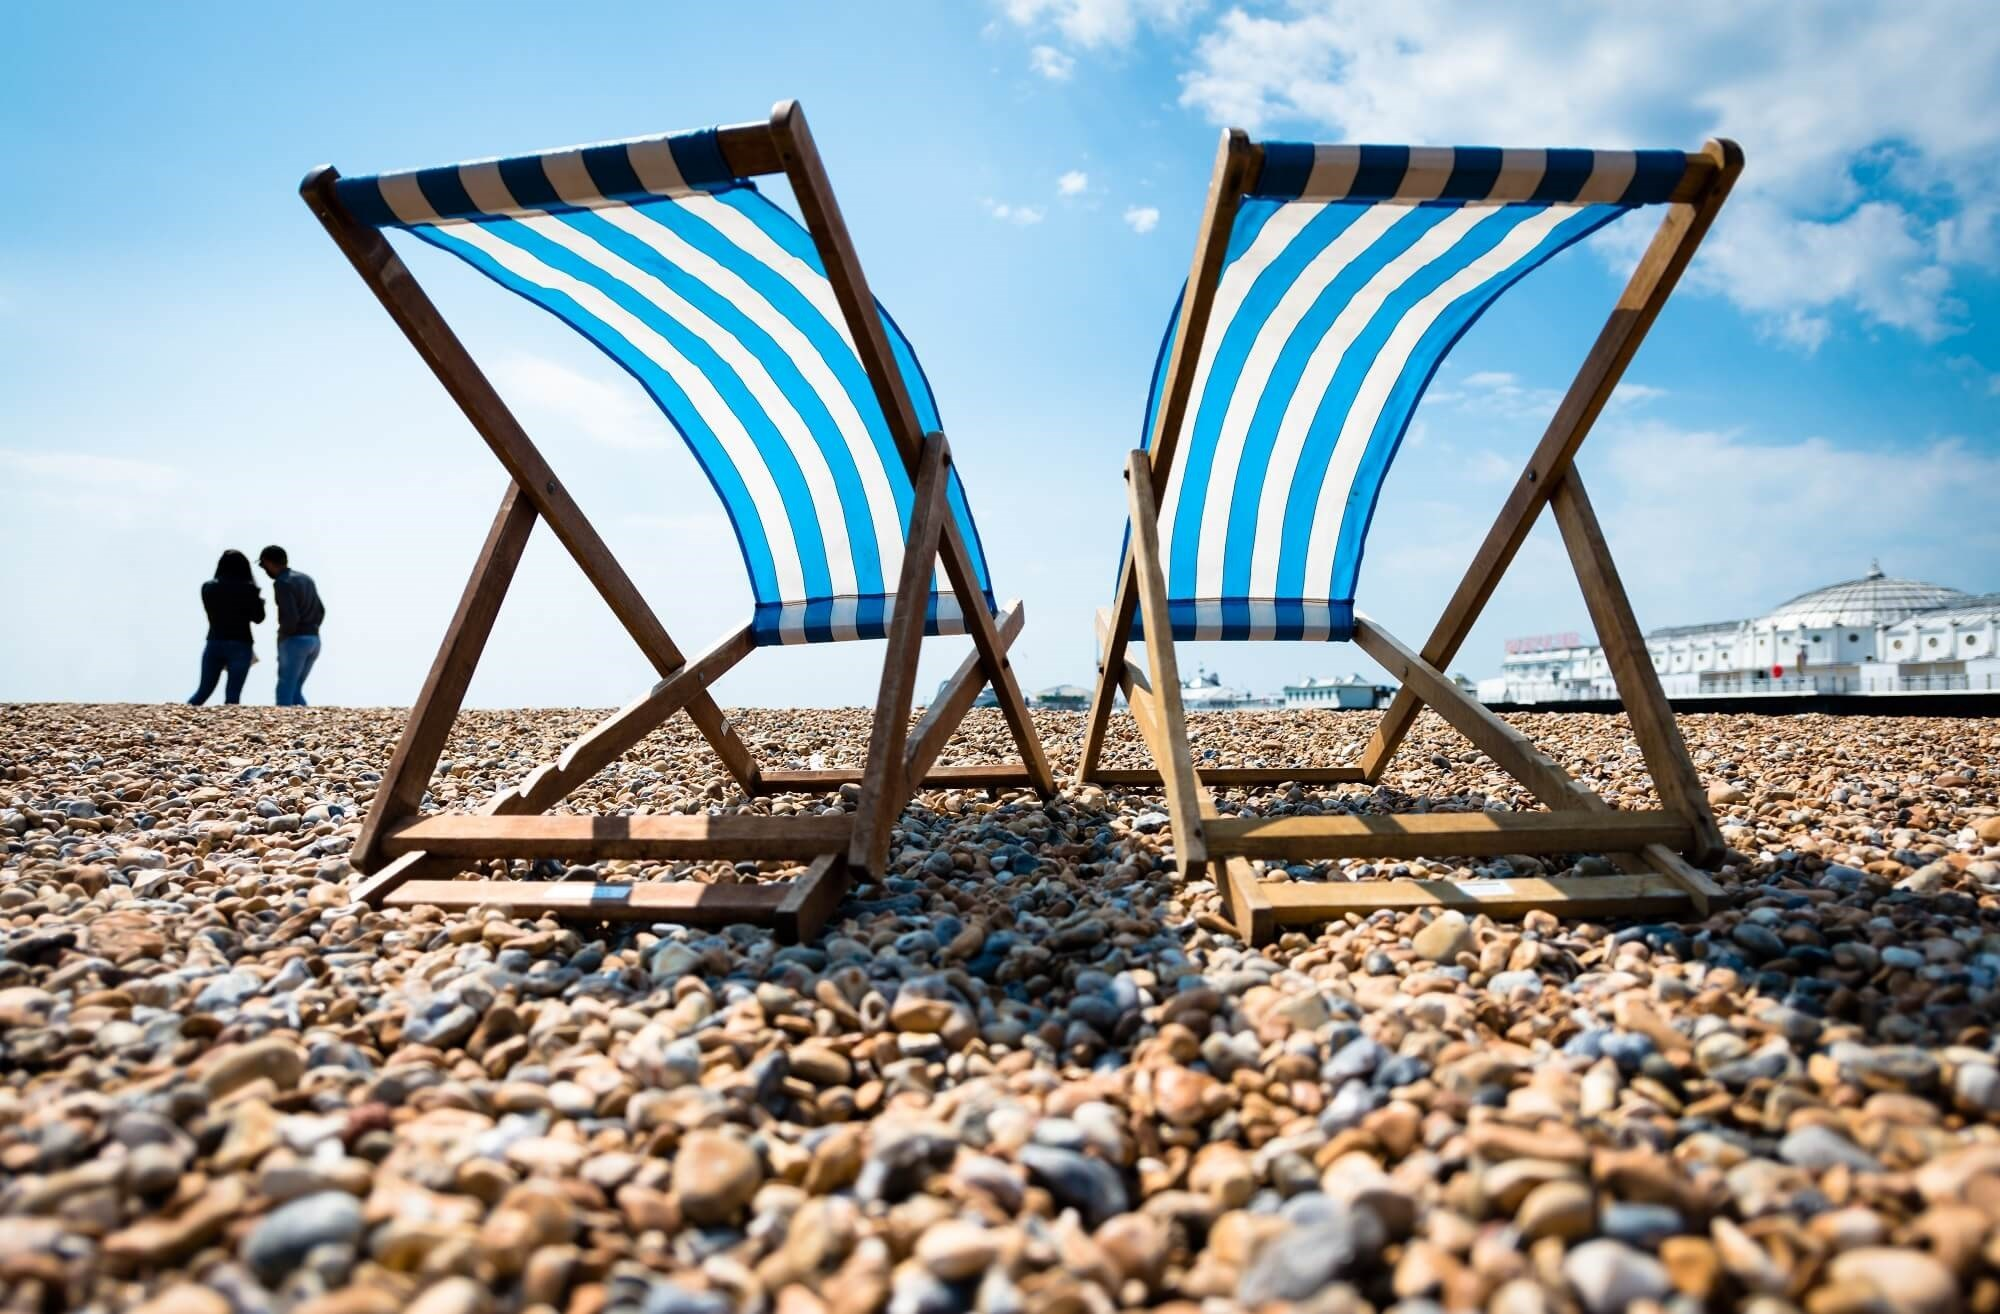 Manic Episode Inpatient Admissions Appear to Peak During Summer